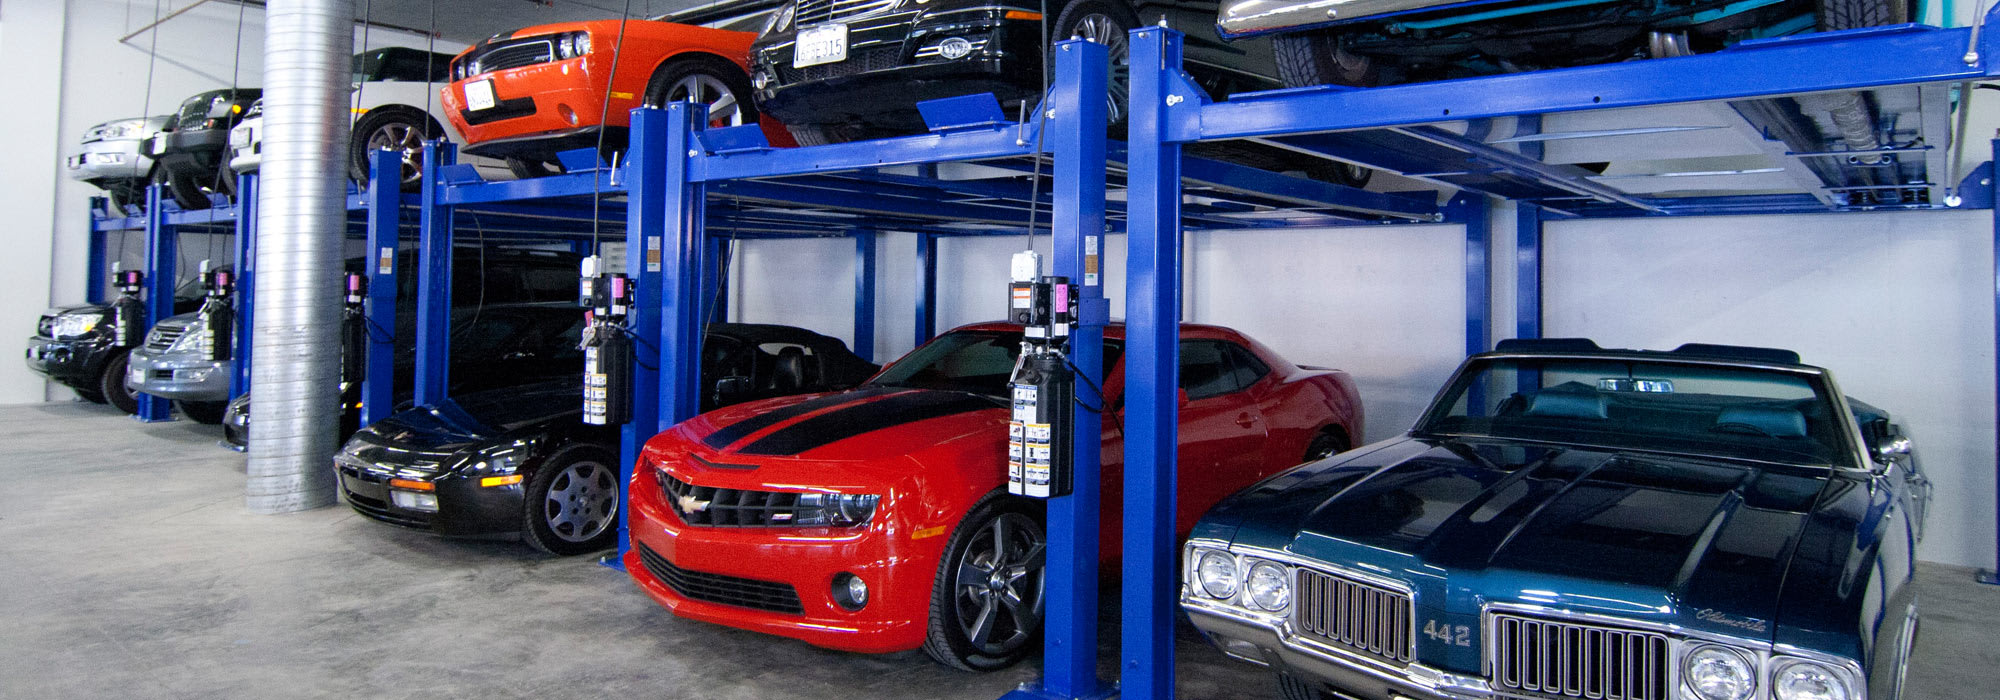 A-1 Car Storage Provides Car Storage in San Diego County